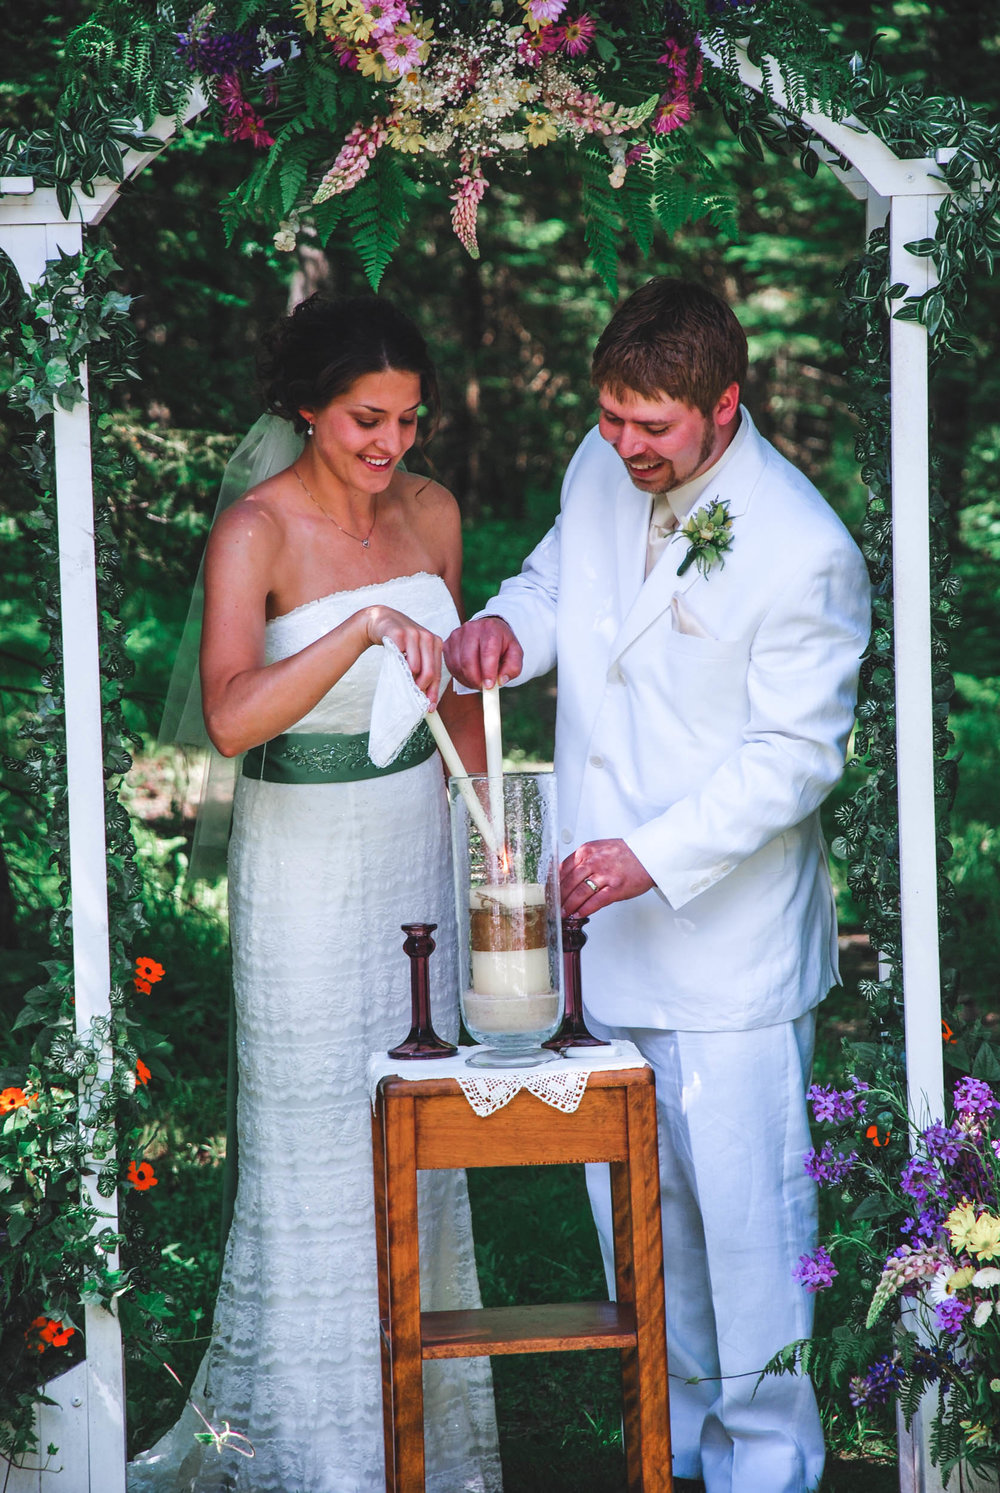 Backyard WI wedding unity candle